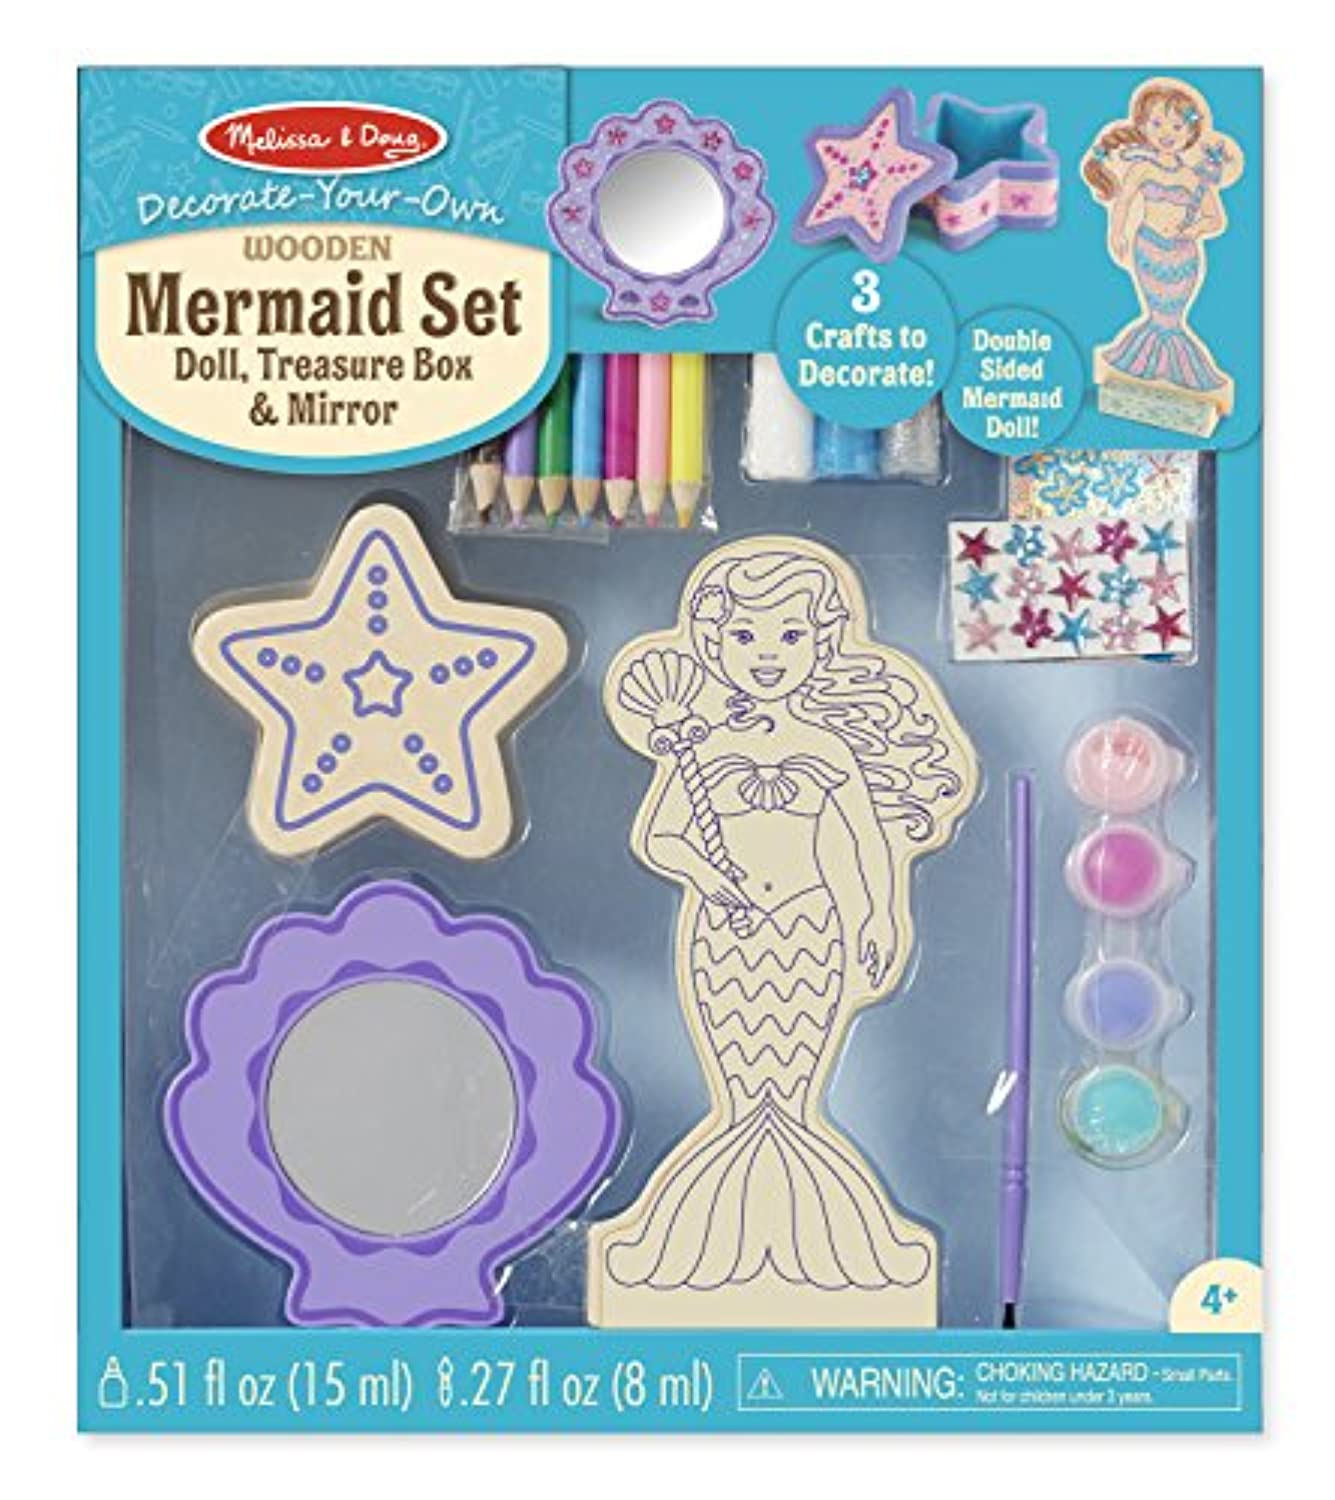 Melissa & Doug decorate-your-own木製Mermaid人形クラフトキット